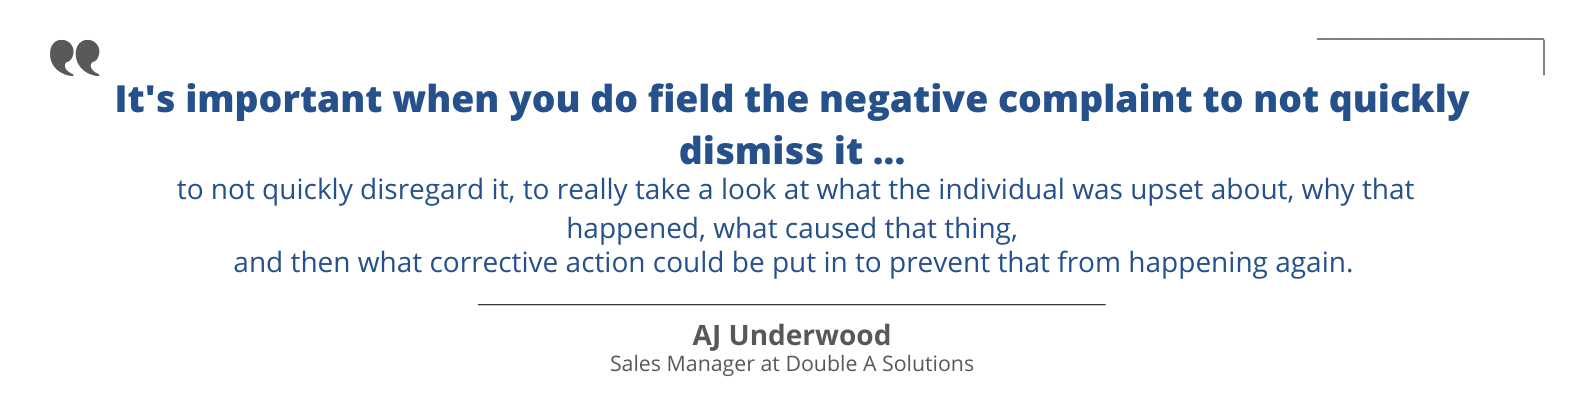 Quote from Aj Underwood explaining how to handle negative complaints